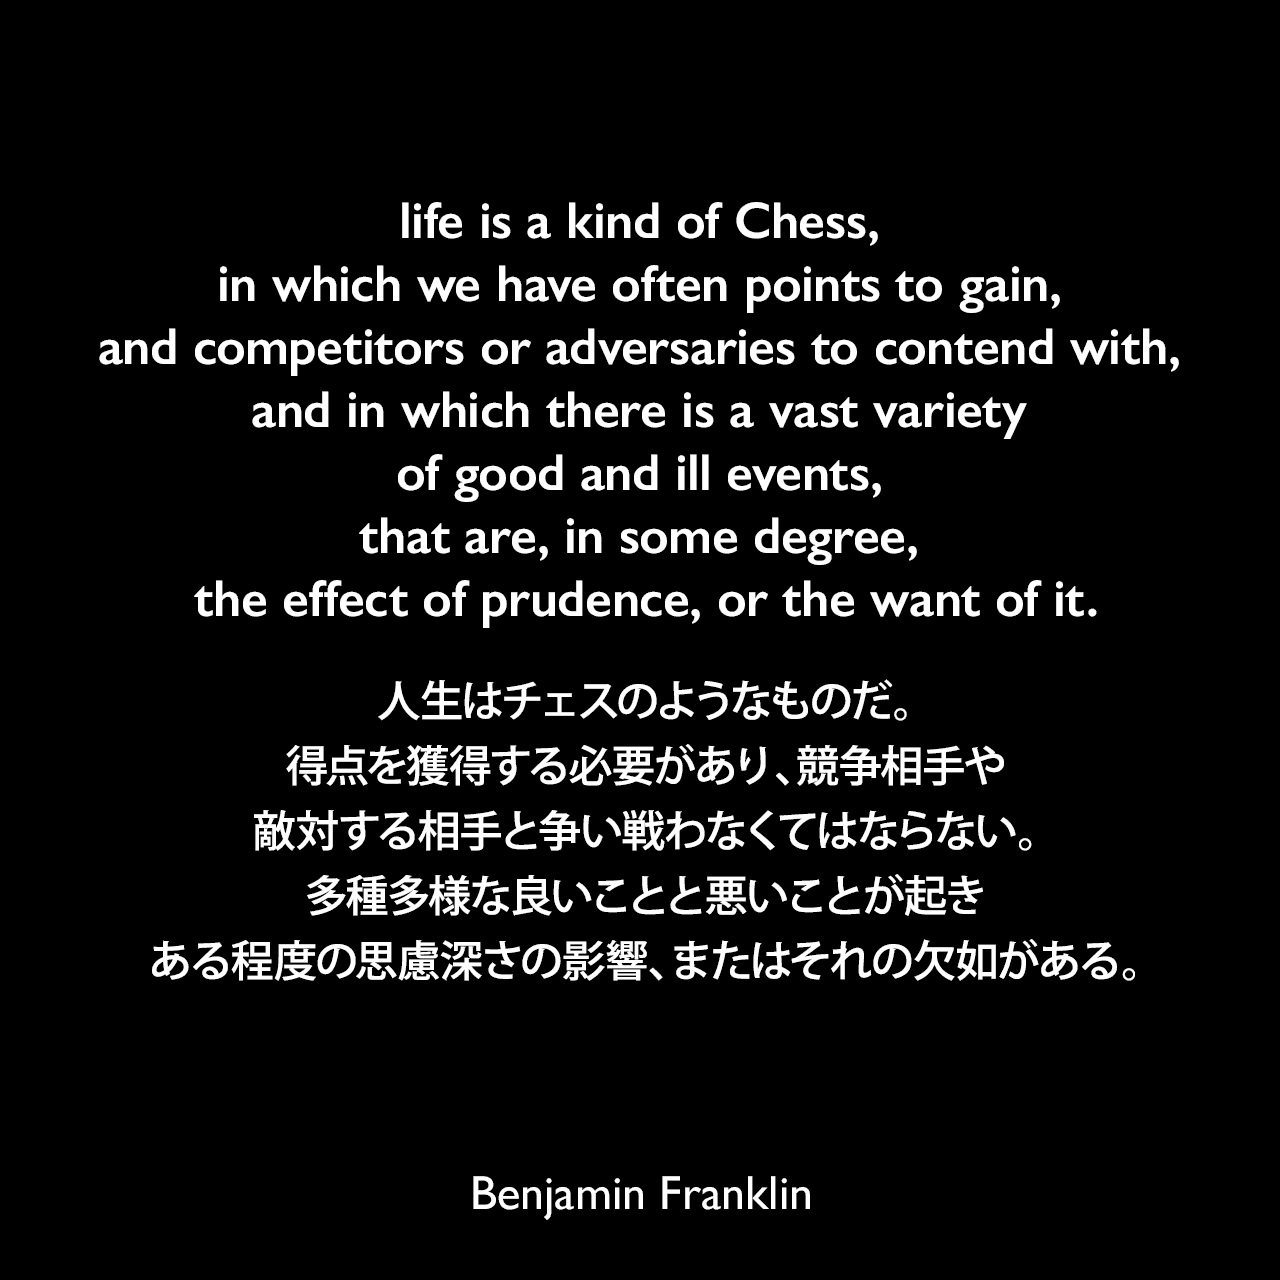 life is a kind of Chess, in which we have often points to gain, and competitors or adversaries to contend with, and in which there is a vast variety of good and ill events, that are, in some degree, the effect of prudence, or the want of it.人生はチェスのようなものだ。得点を獲得する必要があり、競争相手や敵対する相手と争い戦わなくてはならない。多種多様な良いことと悪いことが起き、ある程度の思慮深さの影響、またはそれの欠如がある。- ベンジャミン・フランクリンによる本「The Morals of Chess(1750年)」よりBenjamin Franklin